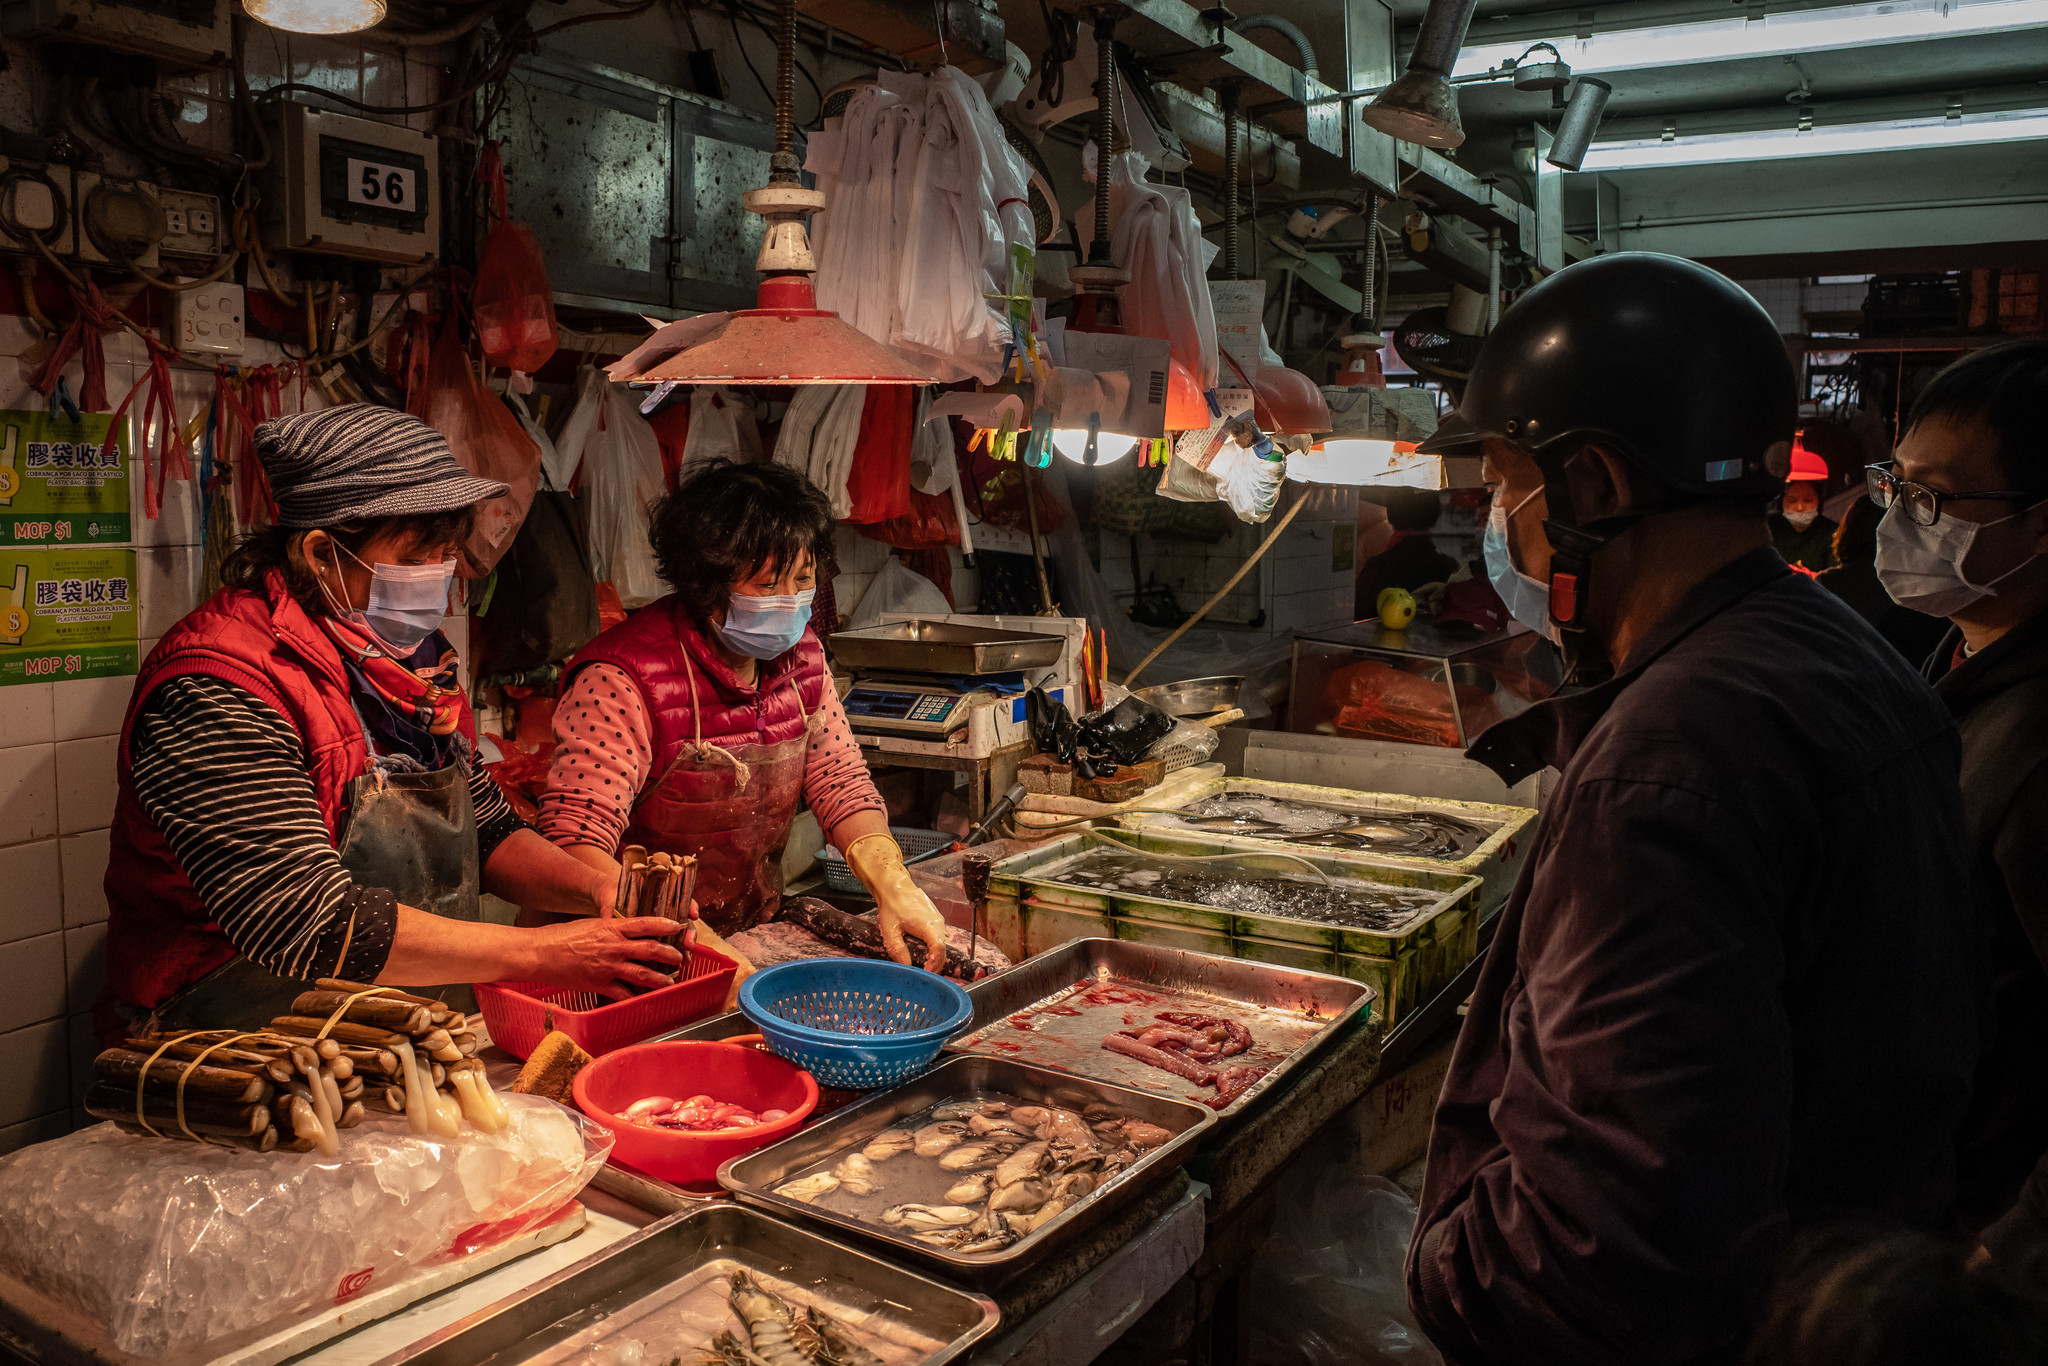 Shut down 'wet markets' worldwide: A job for the United Nations